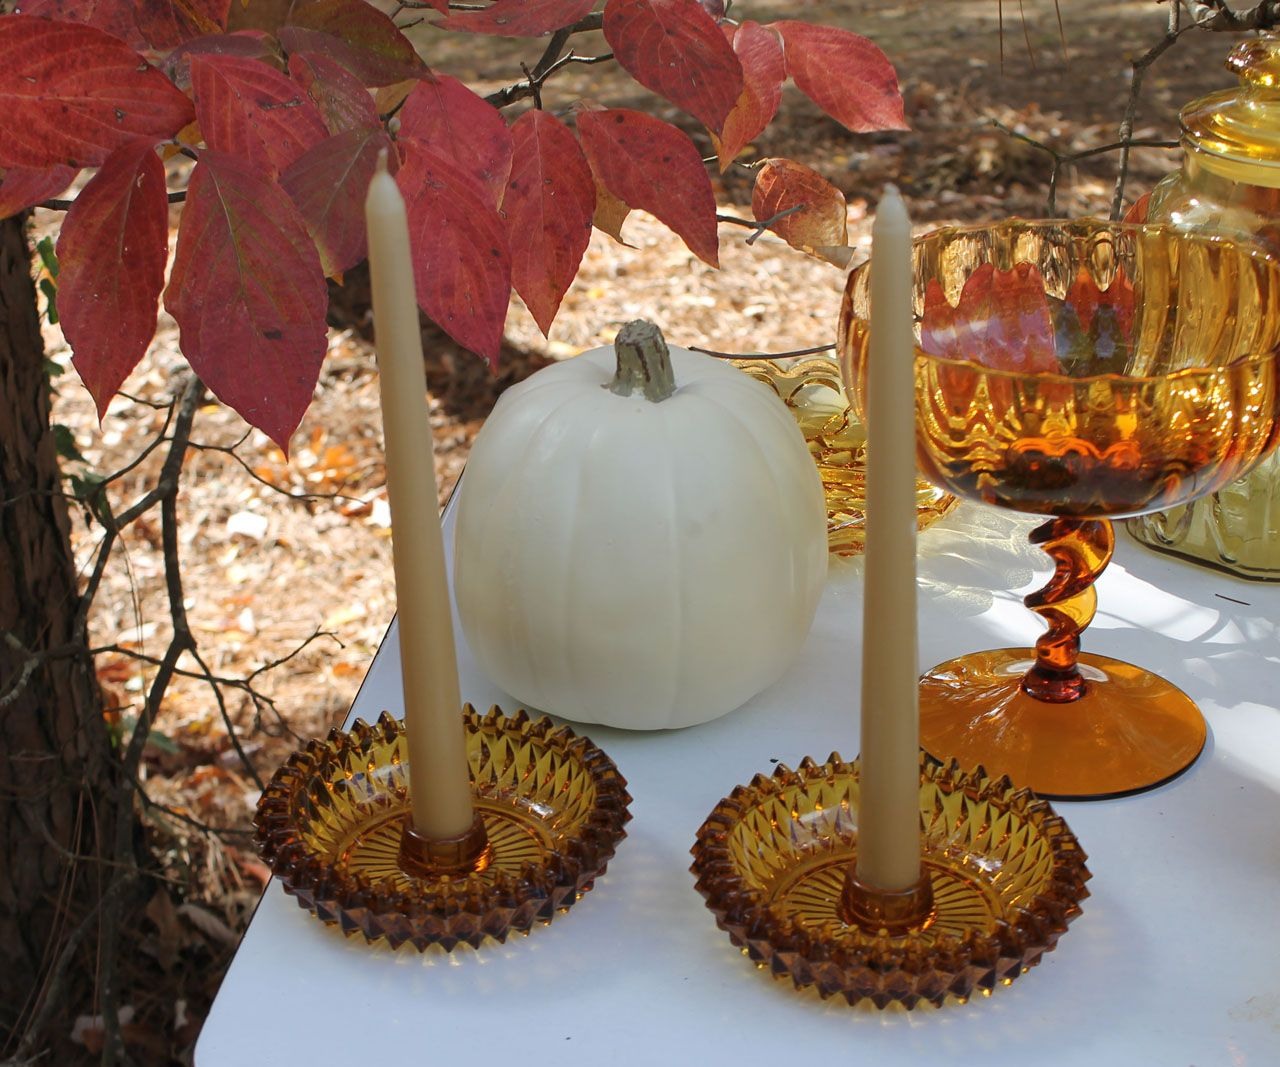 Wedding decor images zimbabwe  Vintage Amber Glassware Rental Collection  Pinterest  Accent